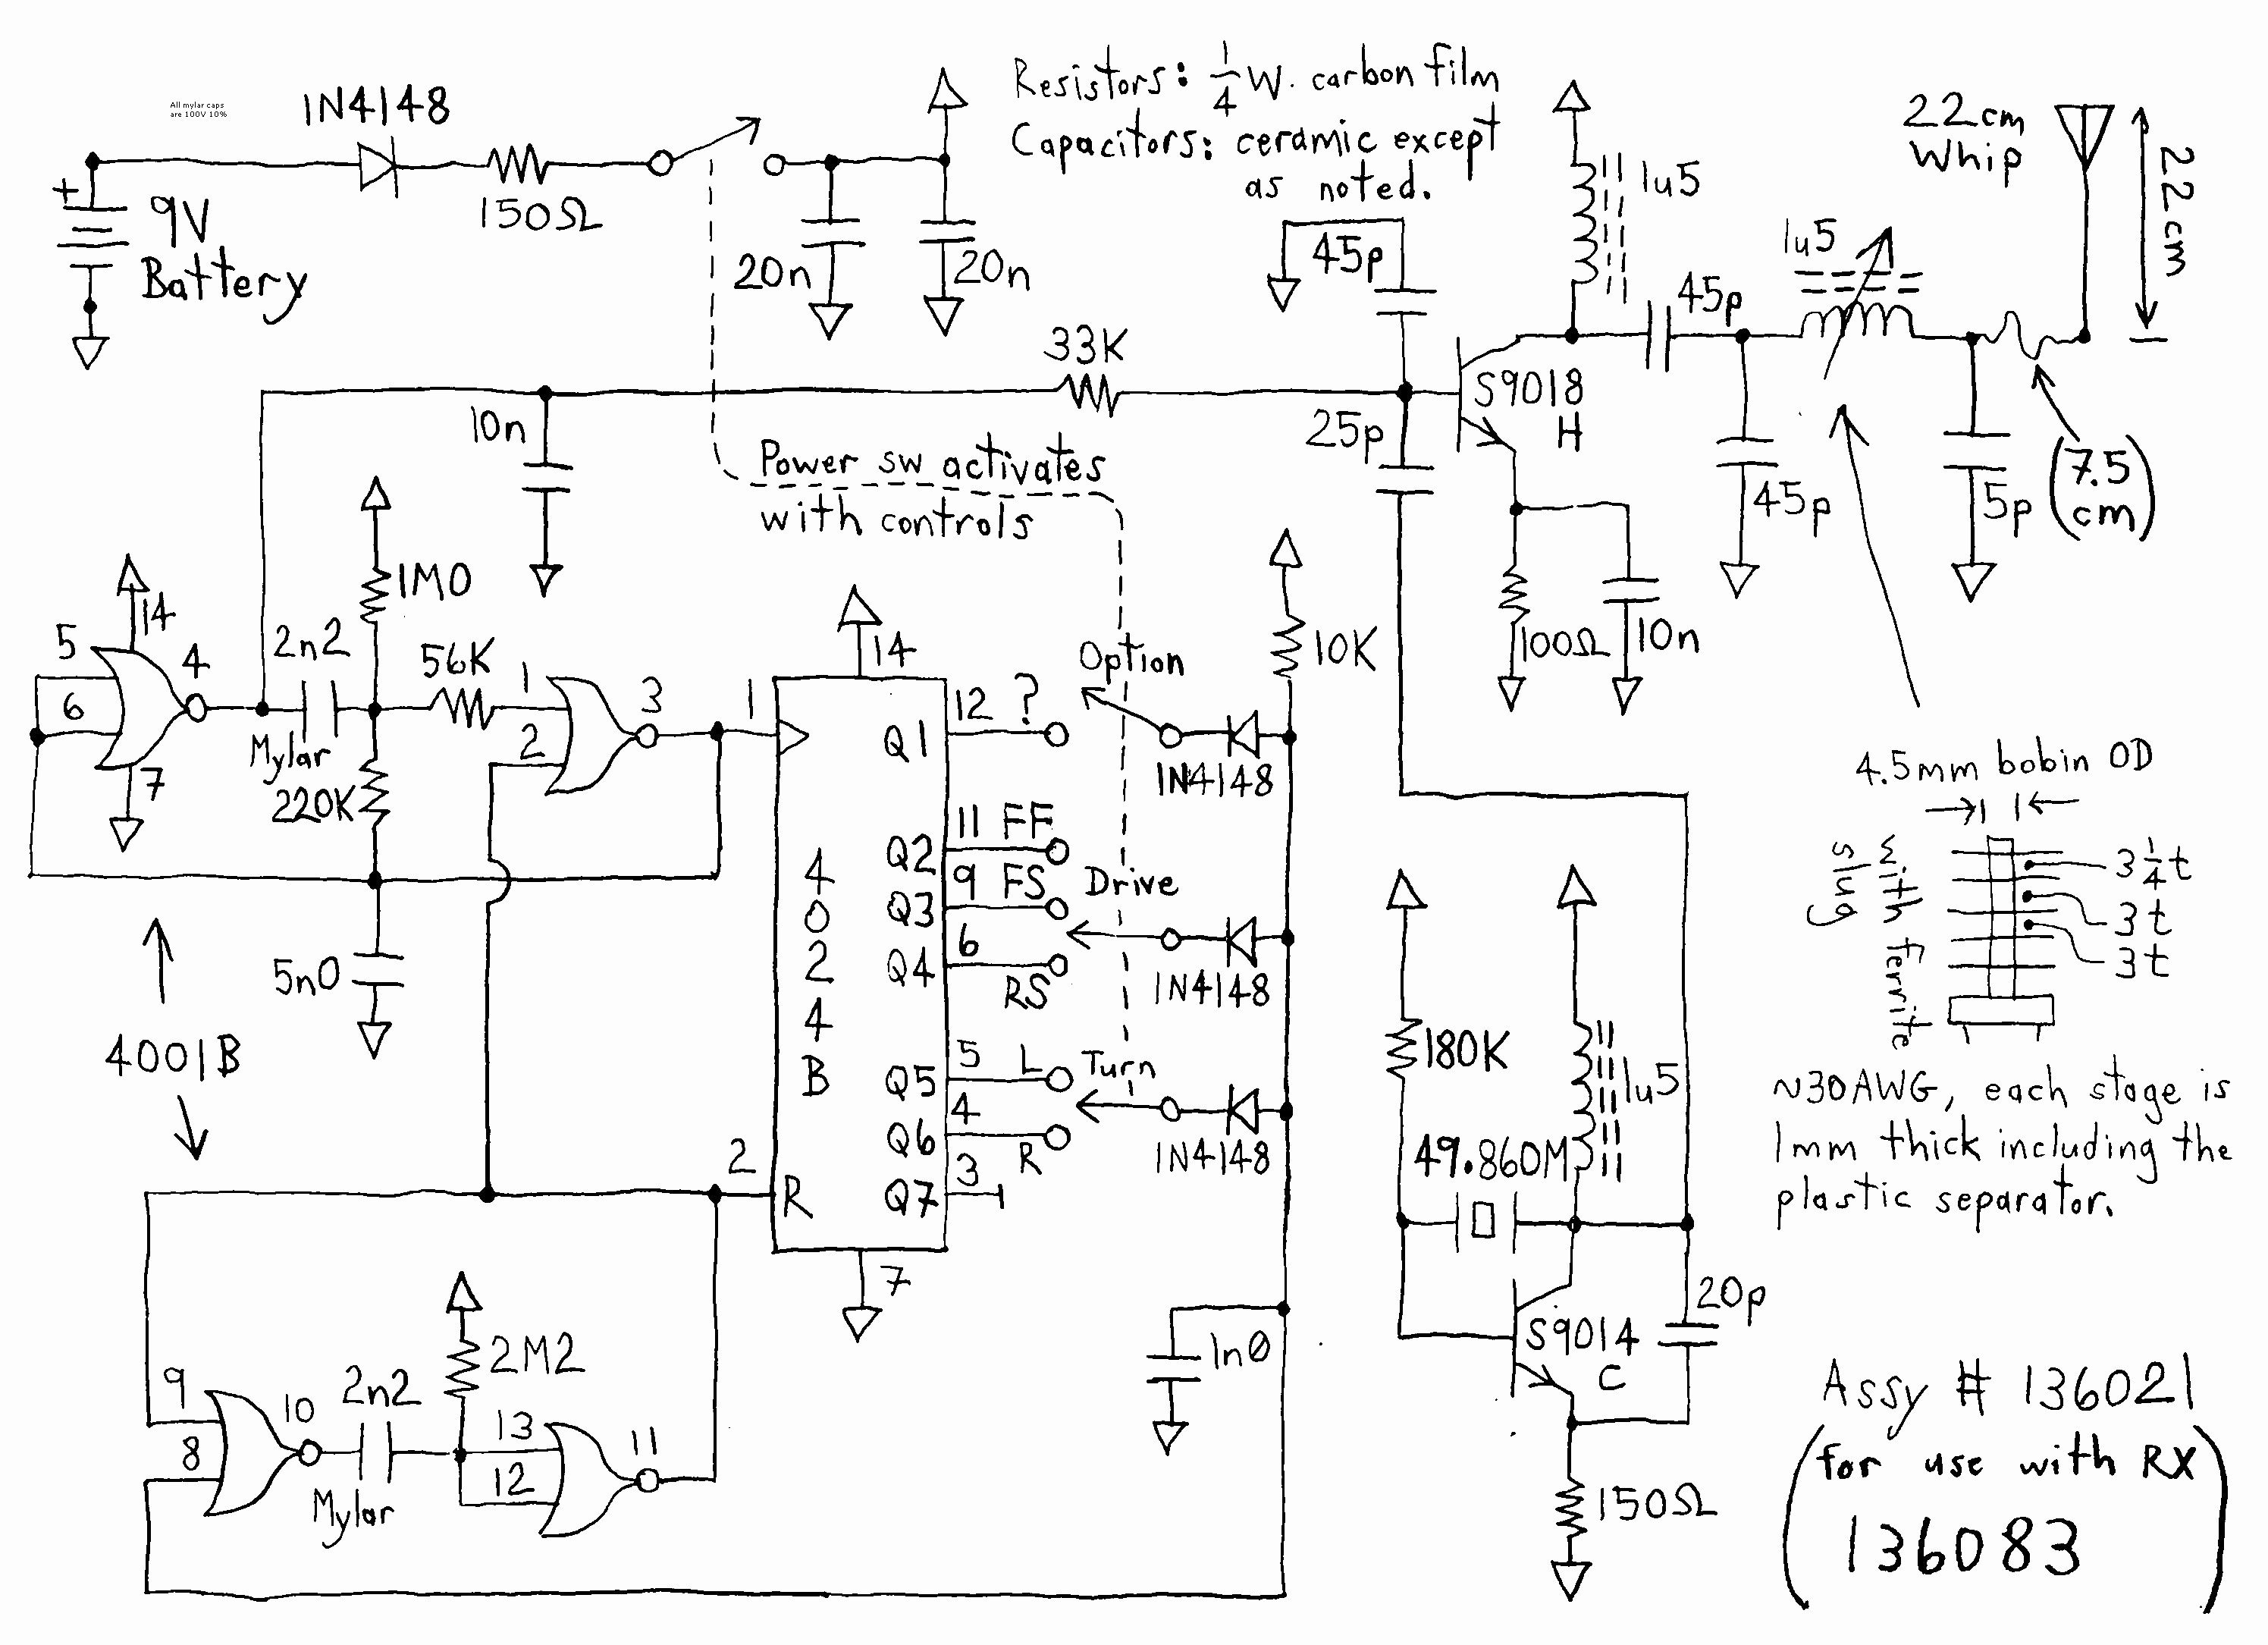 Trailer Wiring Diagram 5 Core South Africa | Wiring Diagram - 4 Core Trailer Wire Diagram